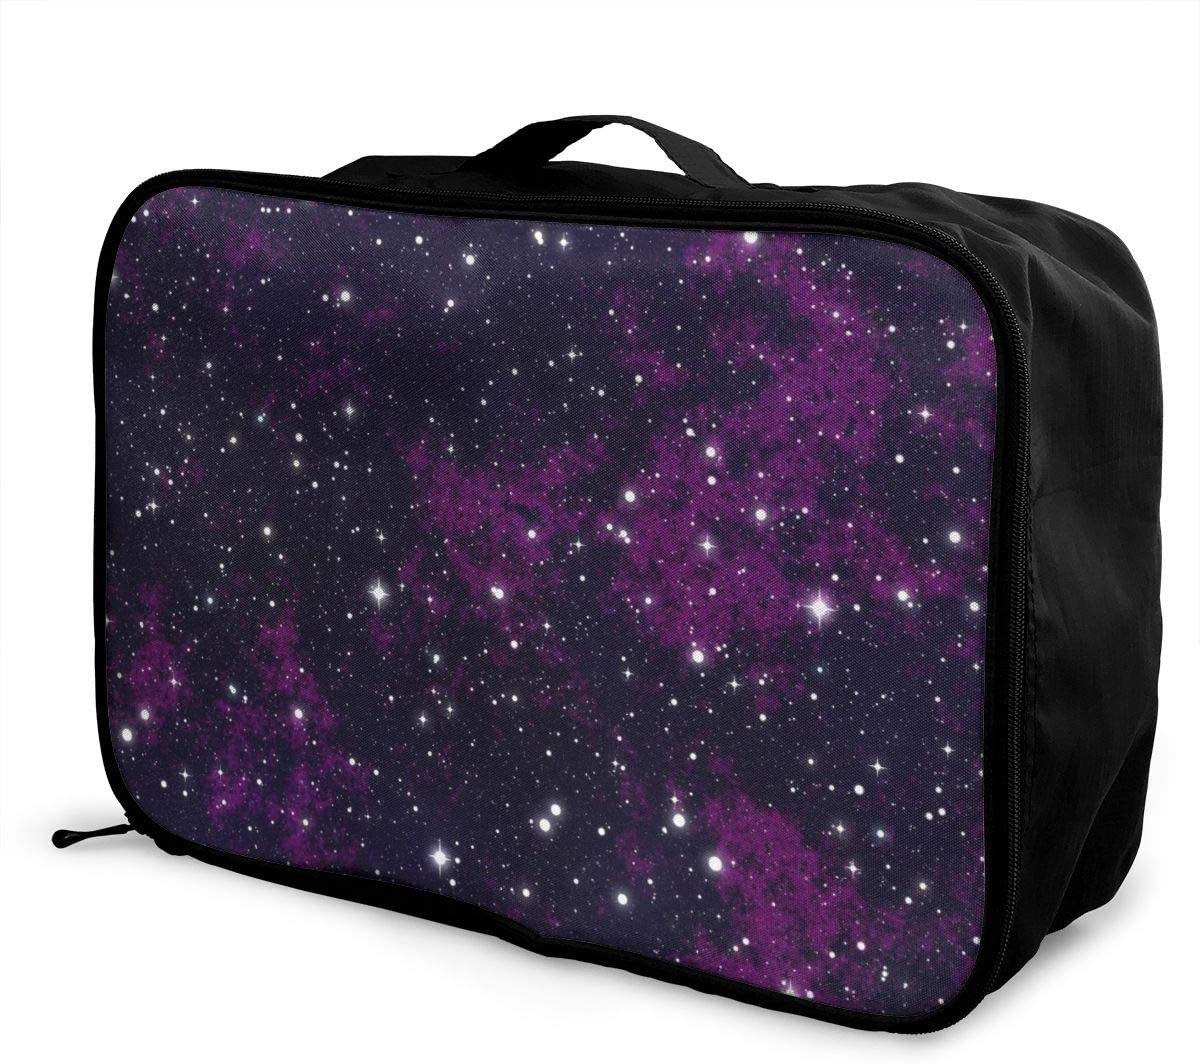 Yunshm Stars Starry Sky Astronomy Universe Galaxy Glitter Personalized Trolley Handbag Waterproof Unisex Large Capacity For Business Travel Storage